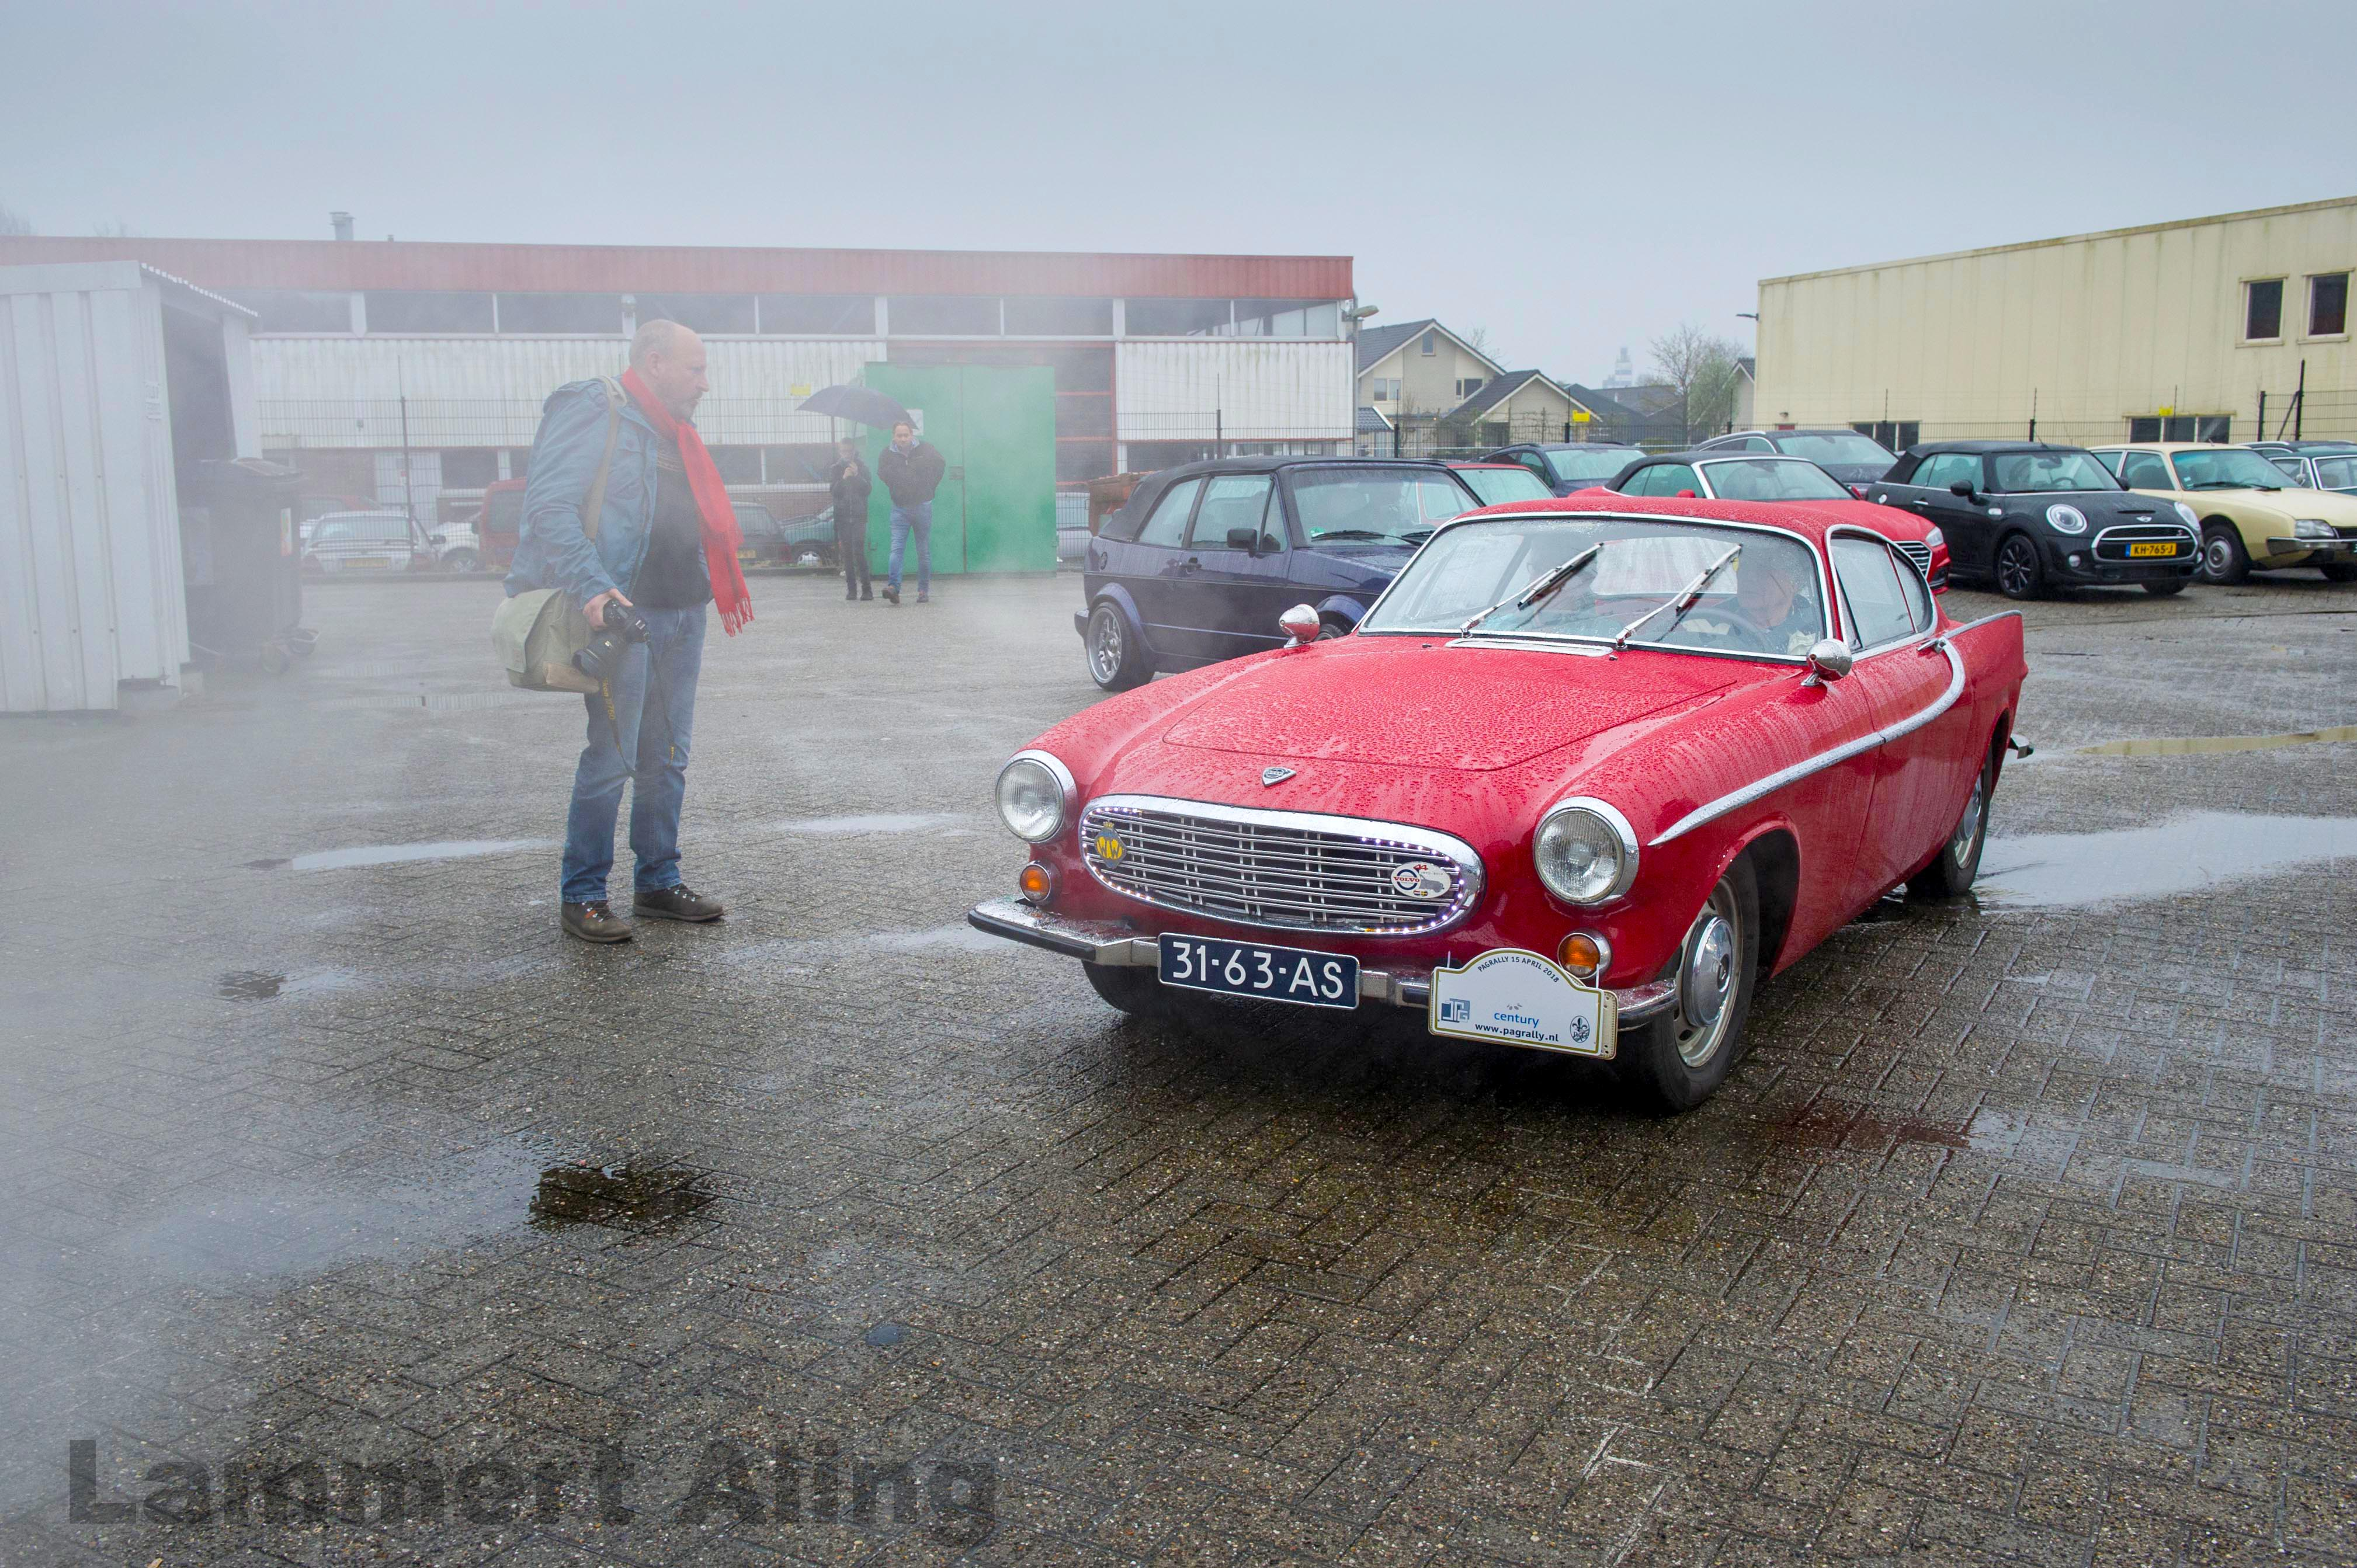 Pagrally2018-4385